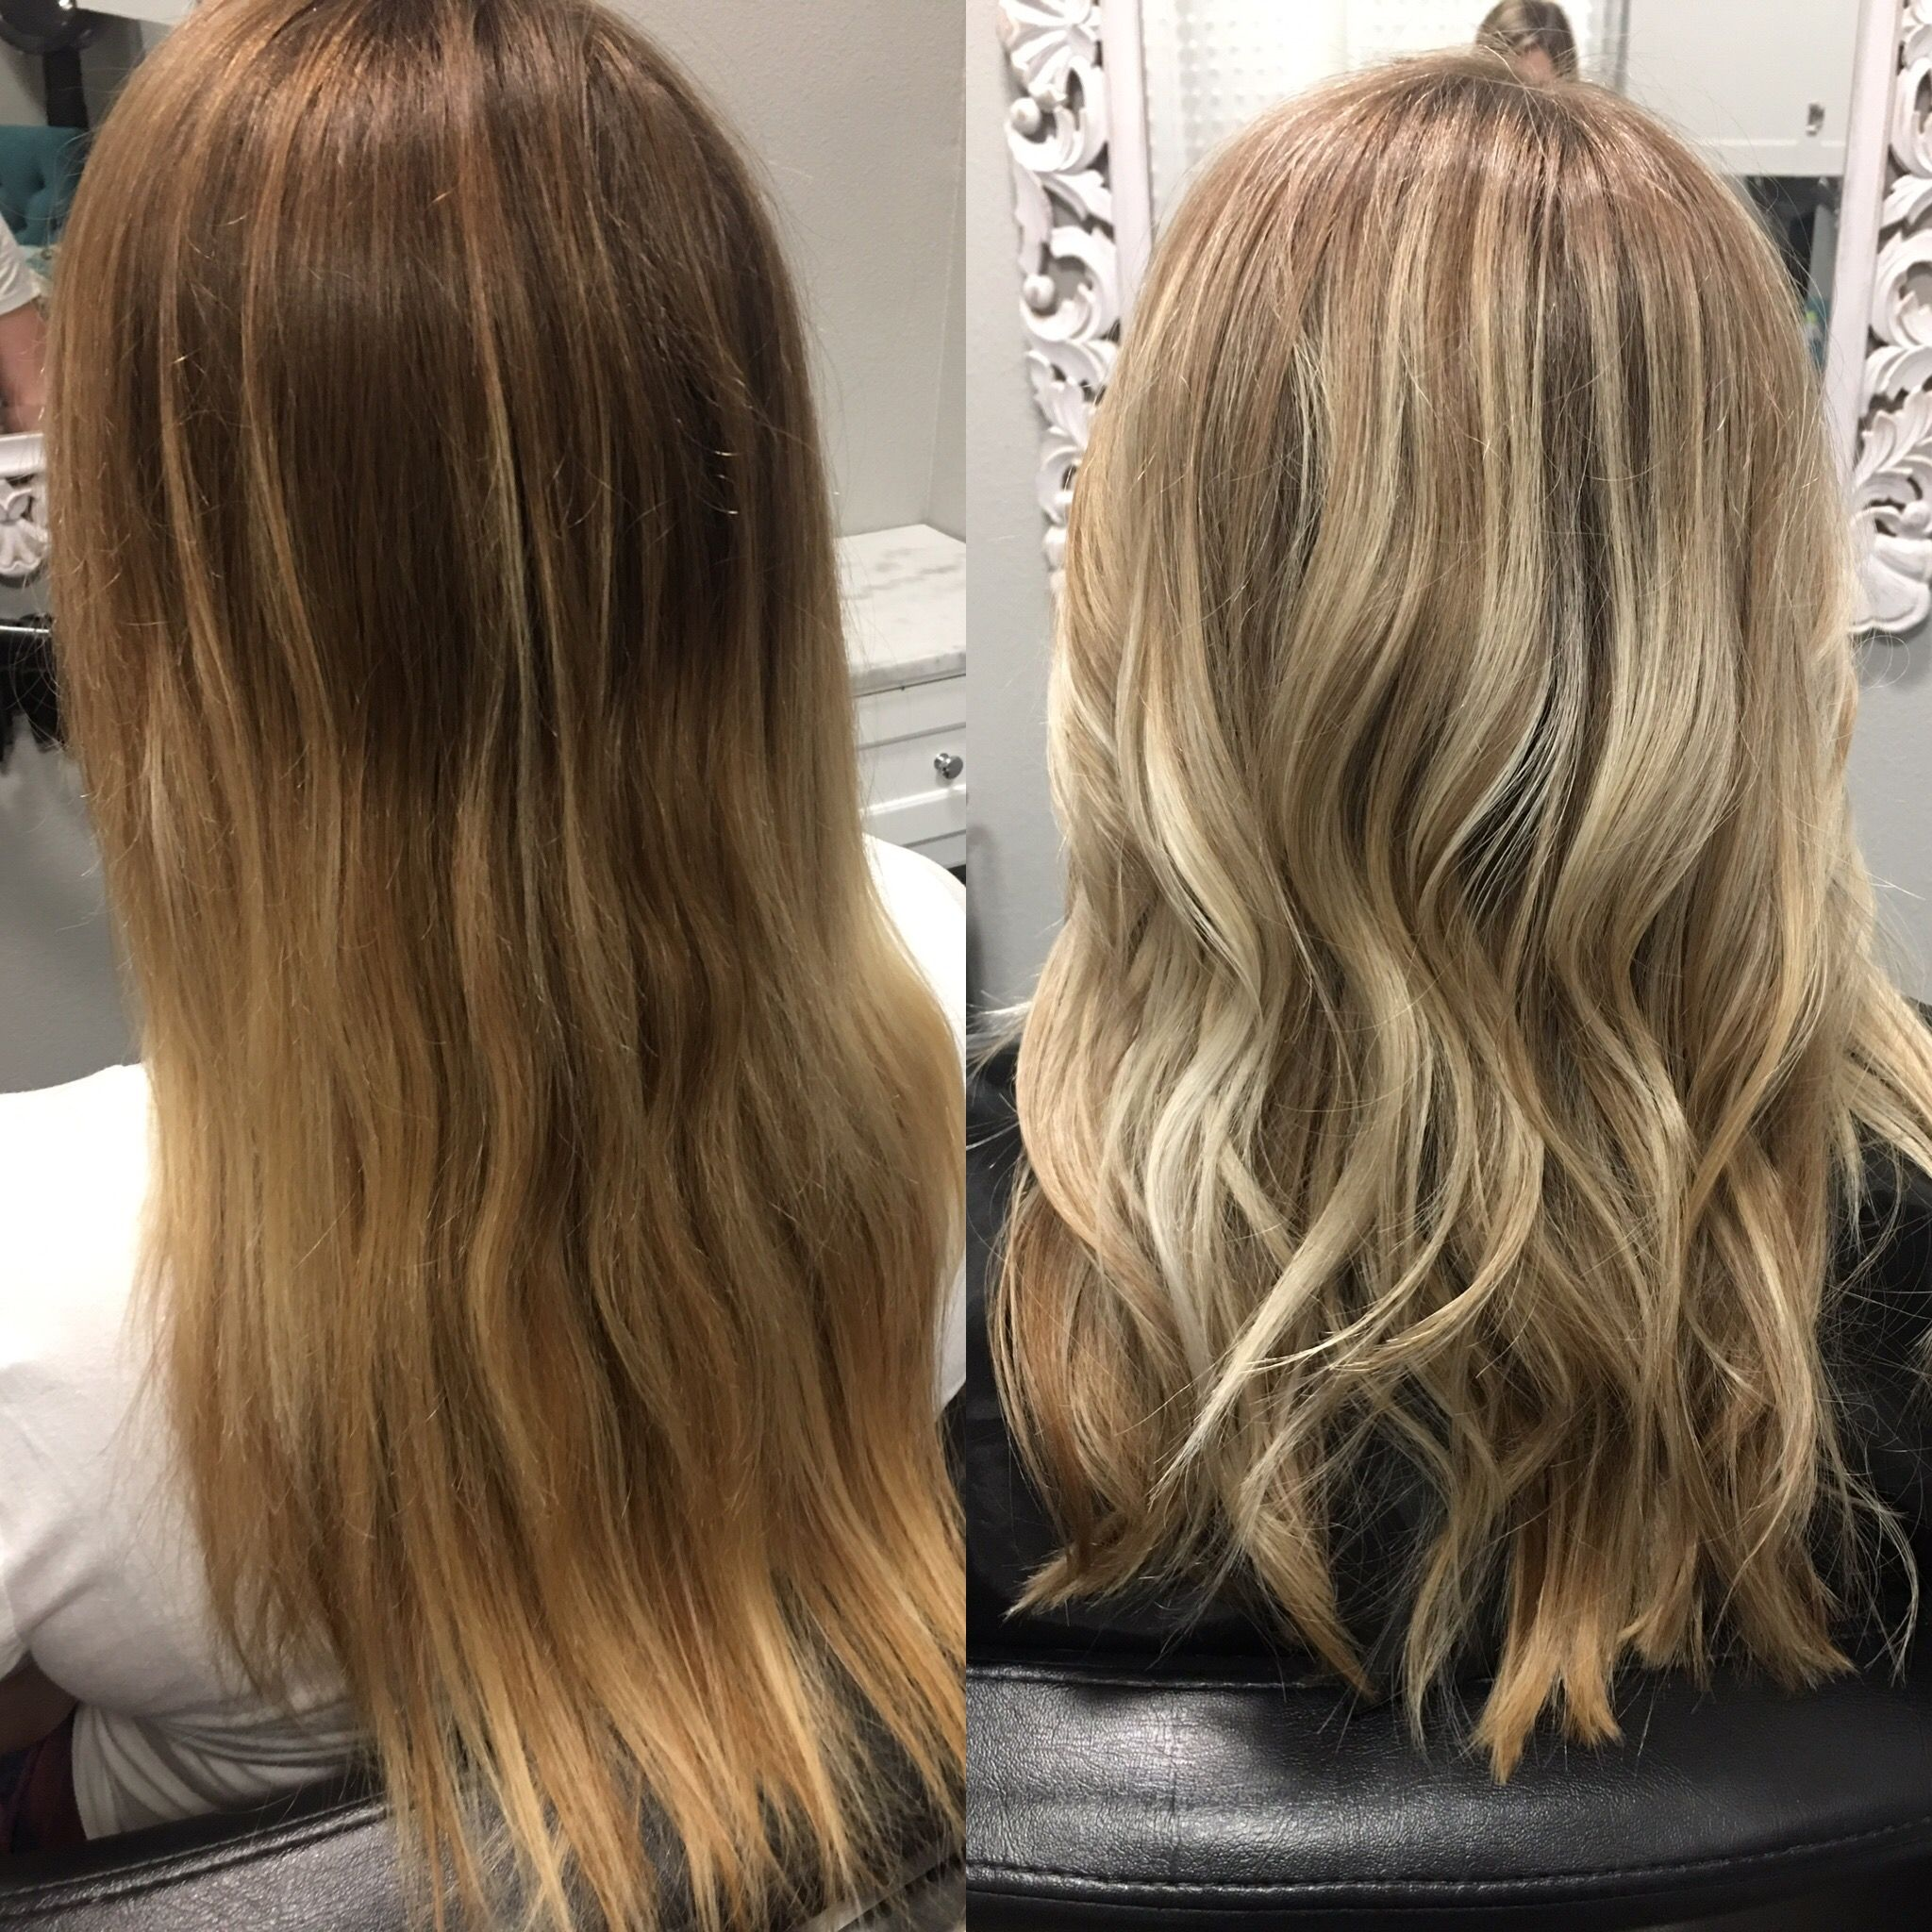 Hair Before And After Blonde Highlights Blonde Highlights